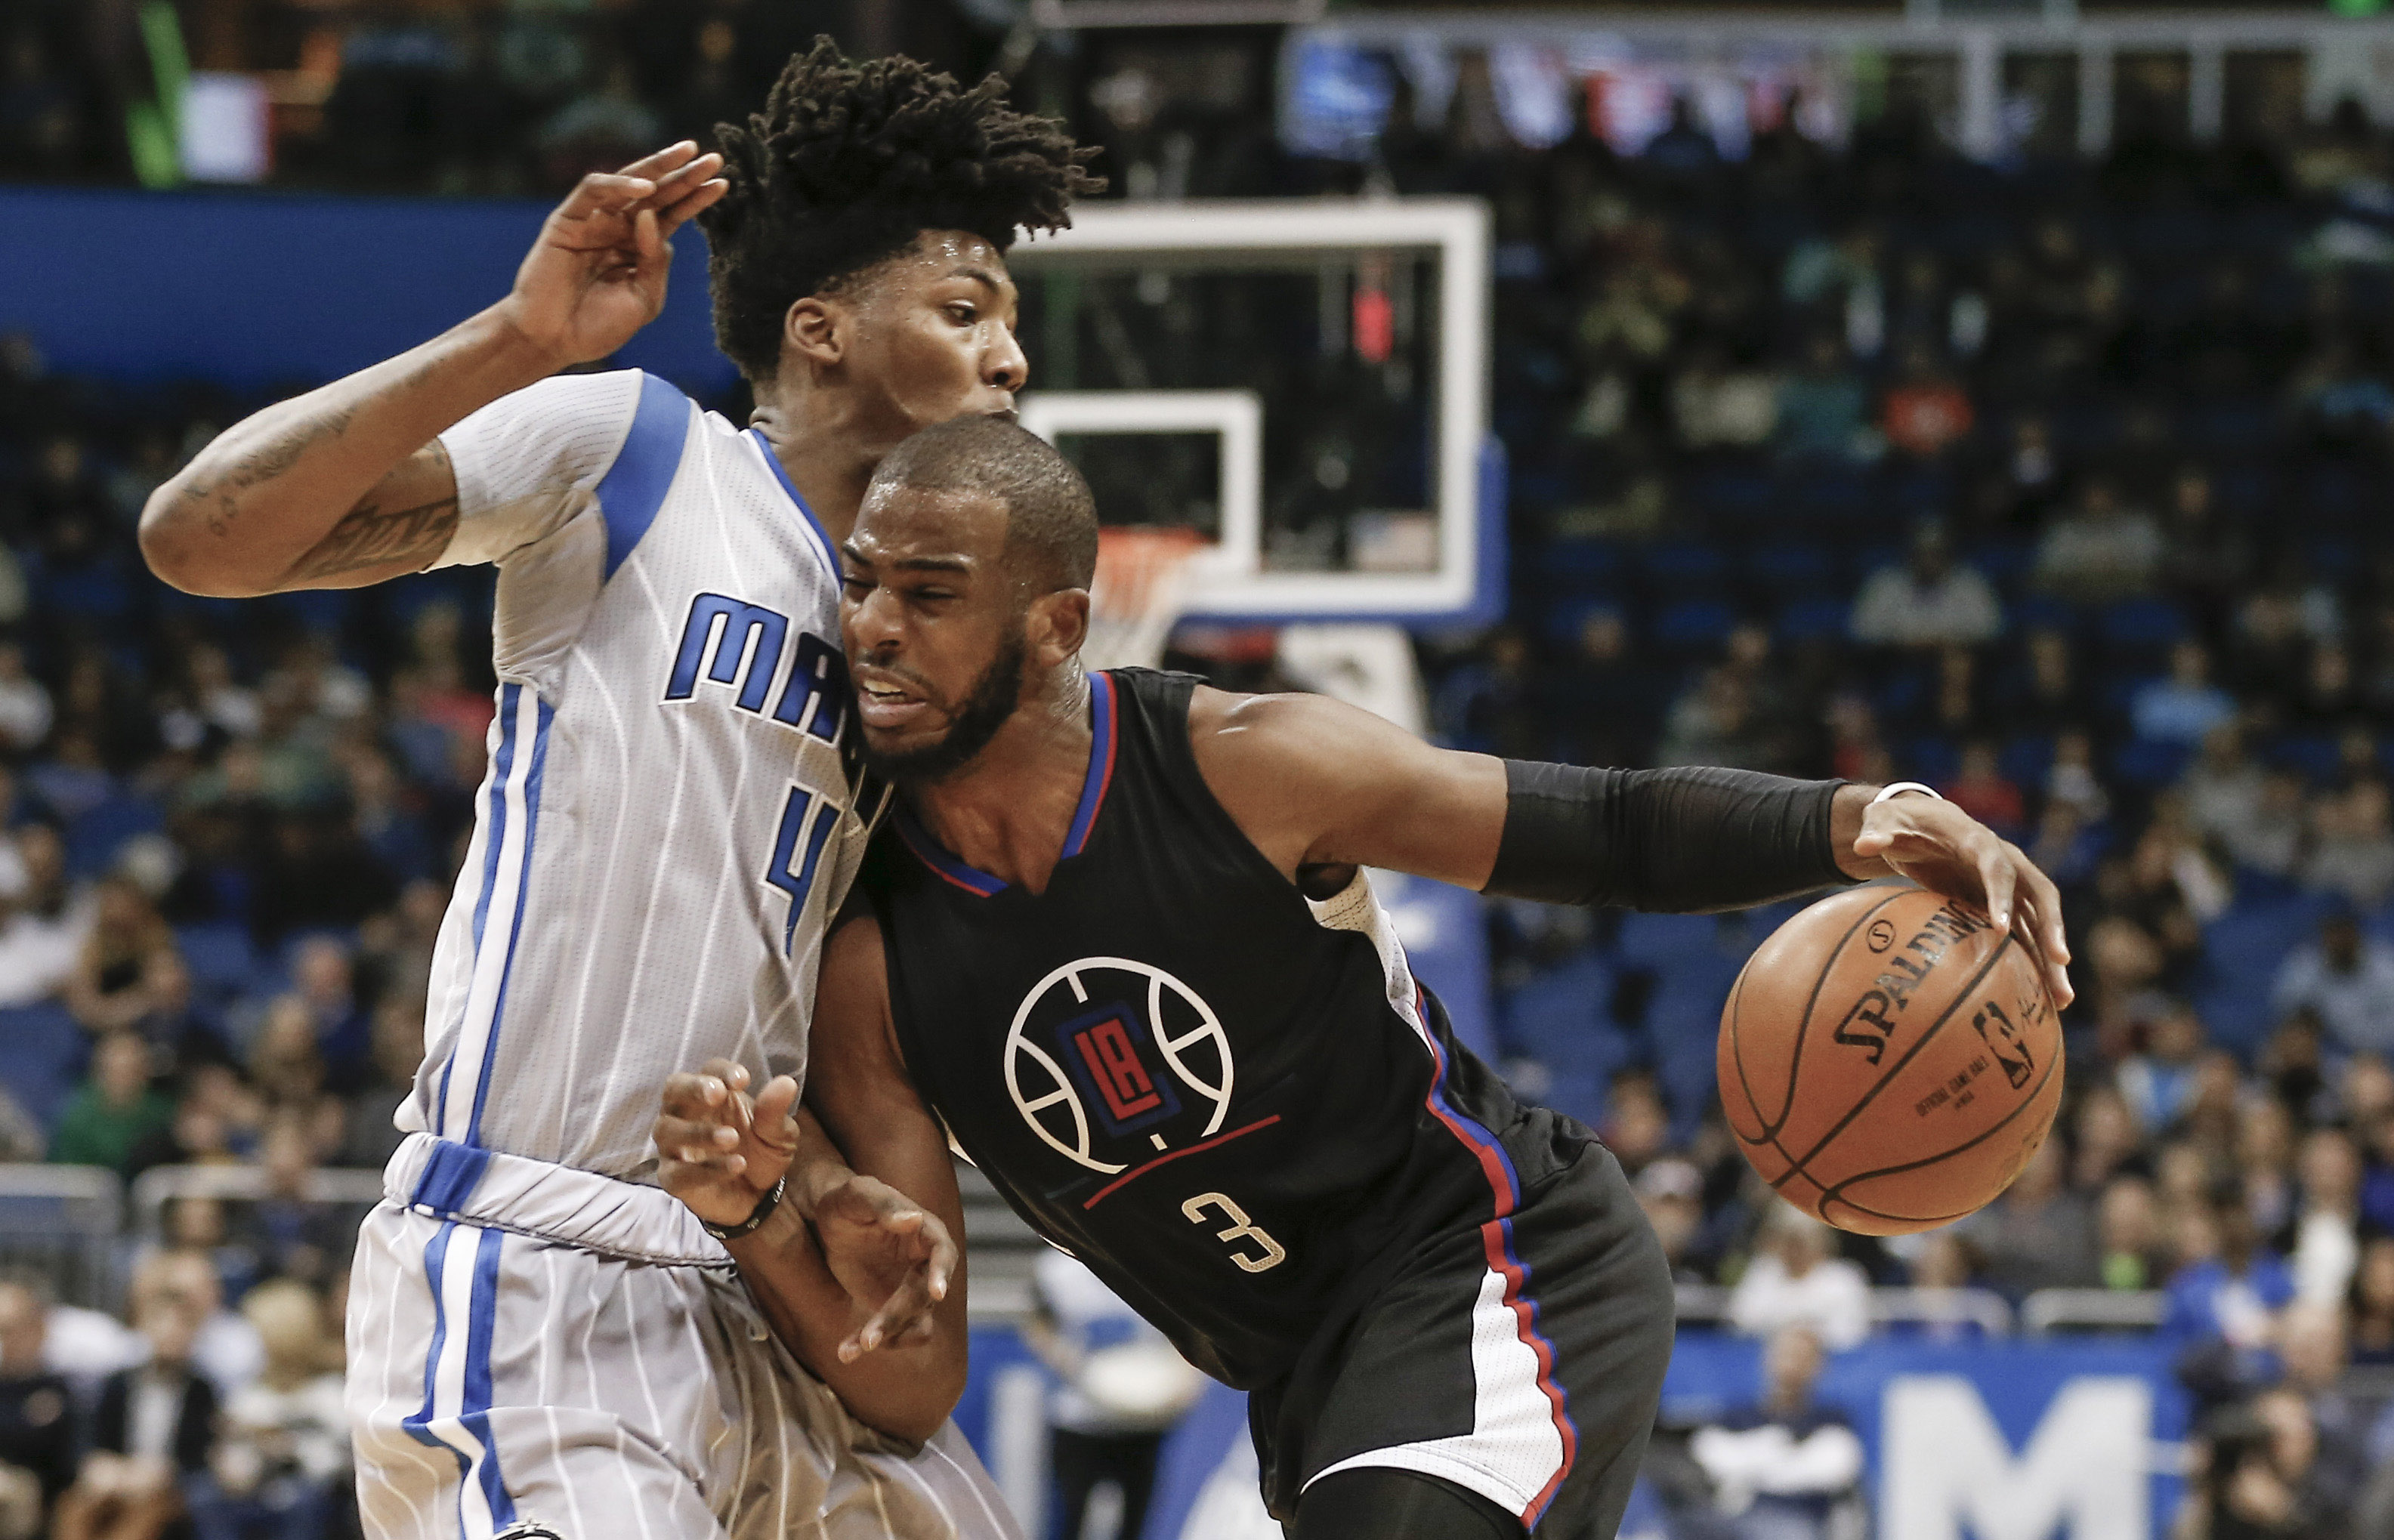 Elfrid Payton (4) defends against the drive from Los Angeles Clippers guard Chris Paul (3) during the first quarter. (photo Reinhold Matay / USA TODAY Sports)